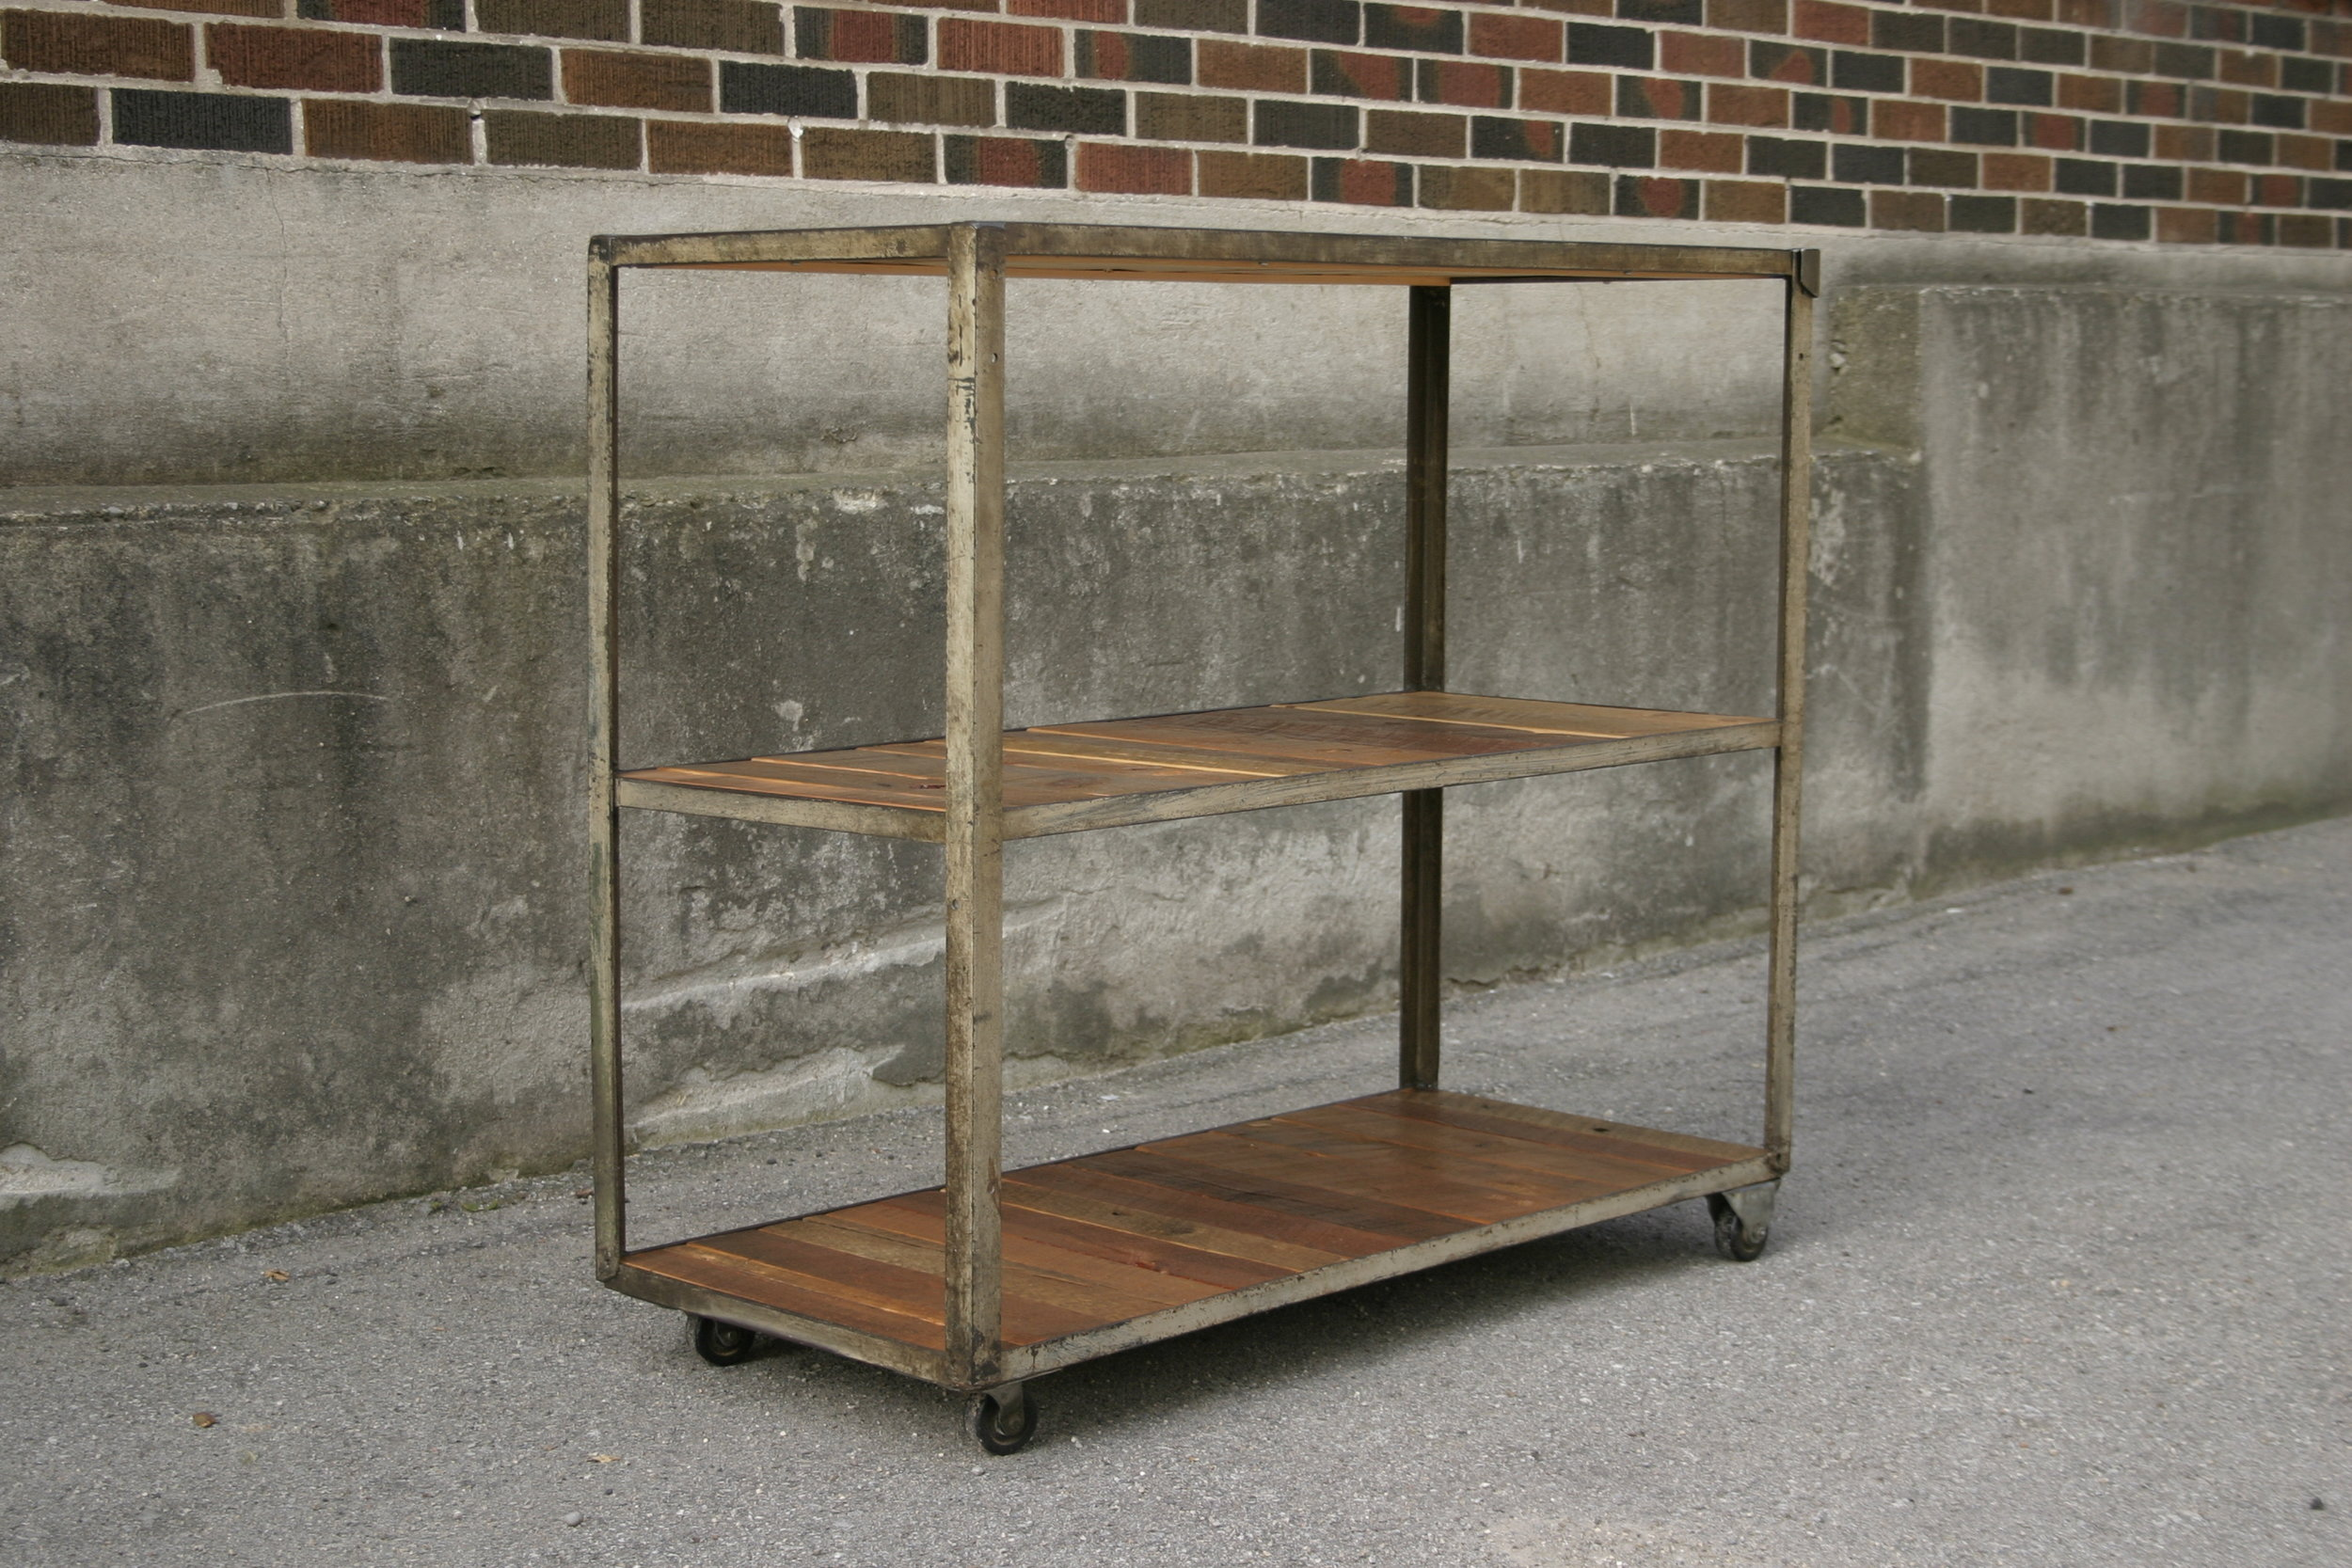 Shelving Unit with Reclaimed Lumber and Steel